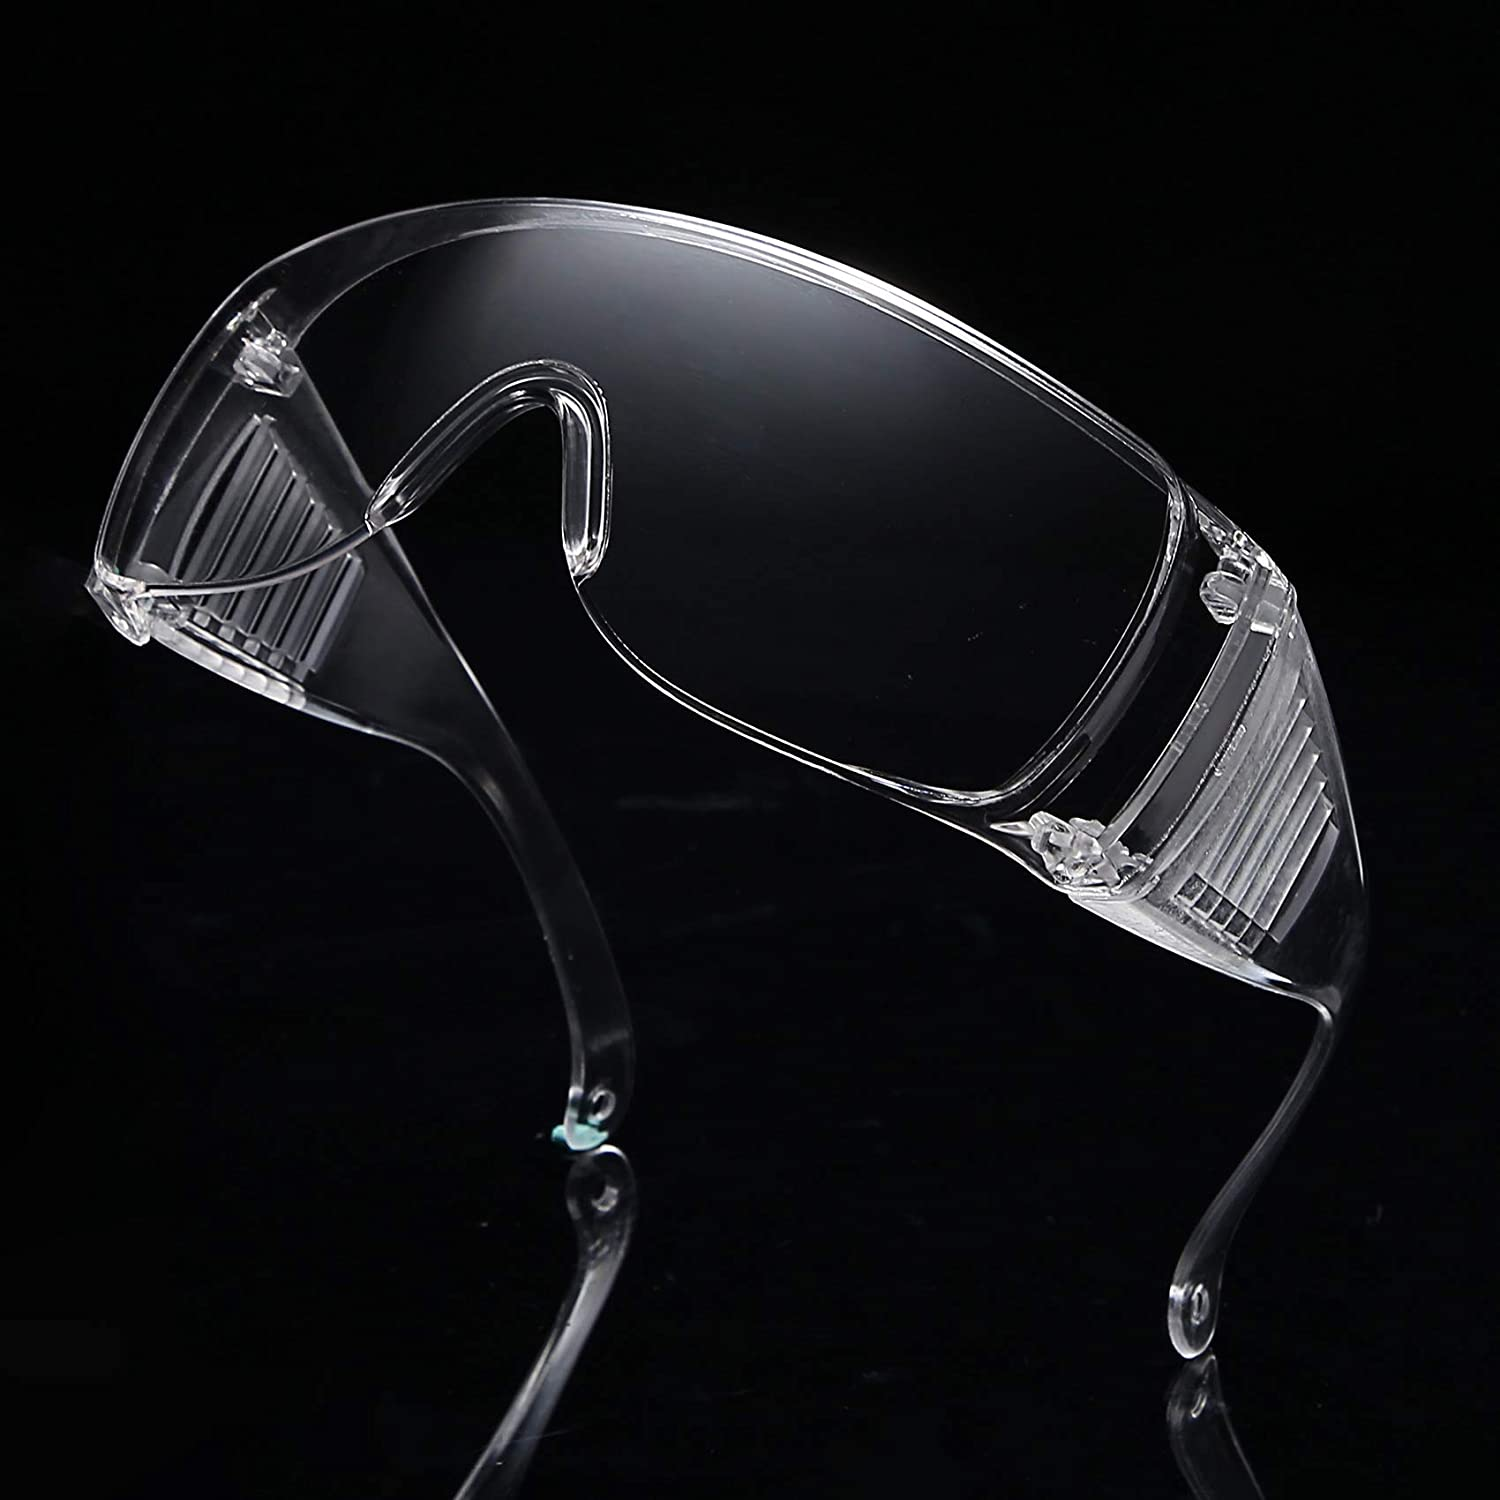 Max 49% OFF New Free Shipping Bevi Goggle Safety Glasses Protective Eye Shield Anti-Fog